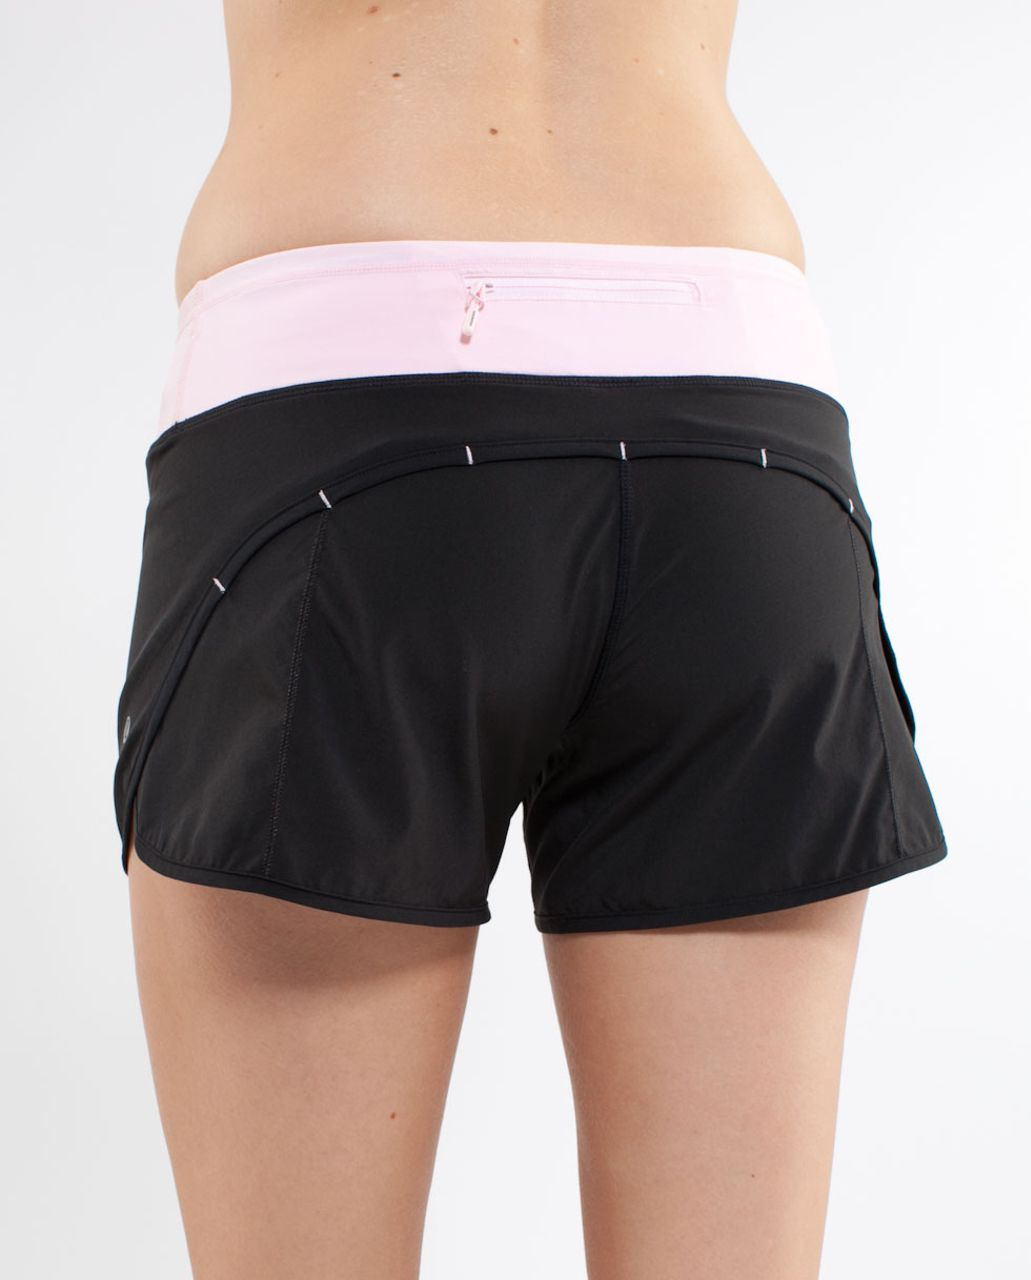 Lululemon Turbo Run Short - Black /  Pig Pink /  Heathered Pig Pinks